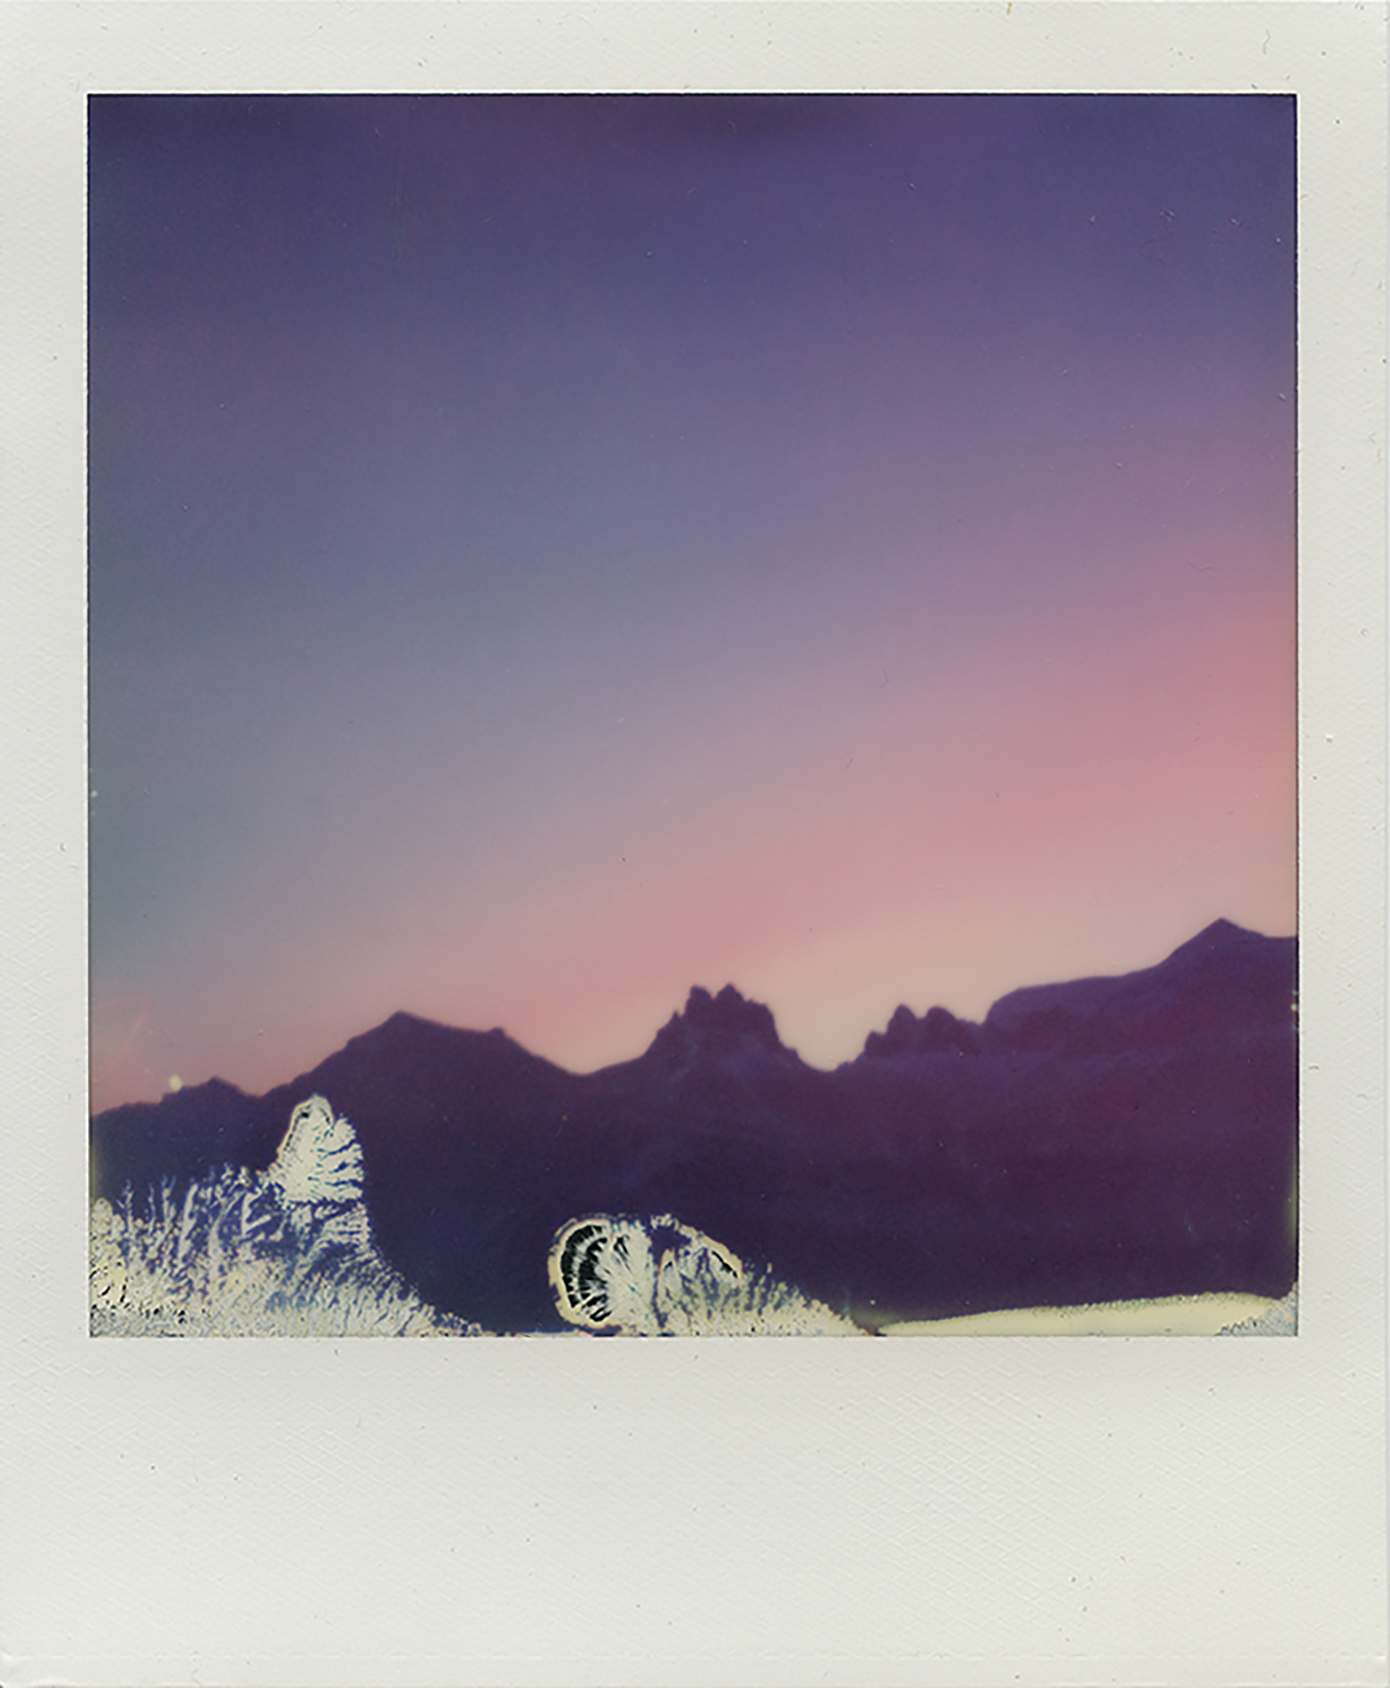 Polaroid Photo by Amy Caterina, January 2017